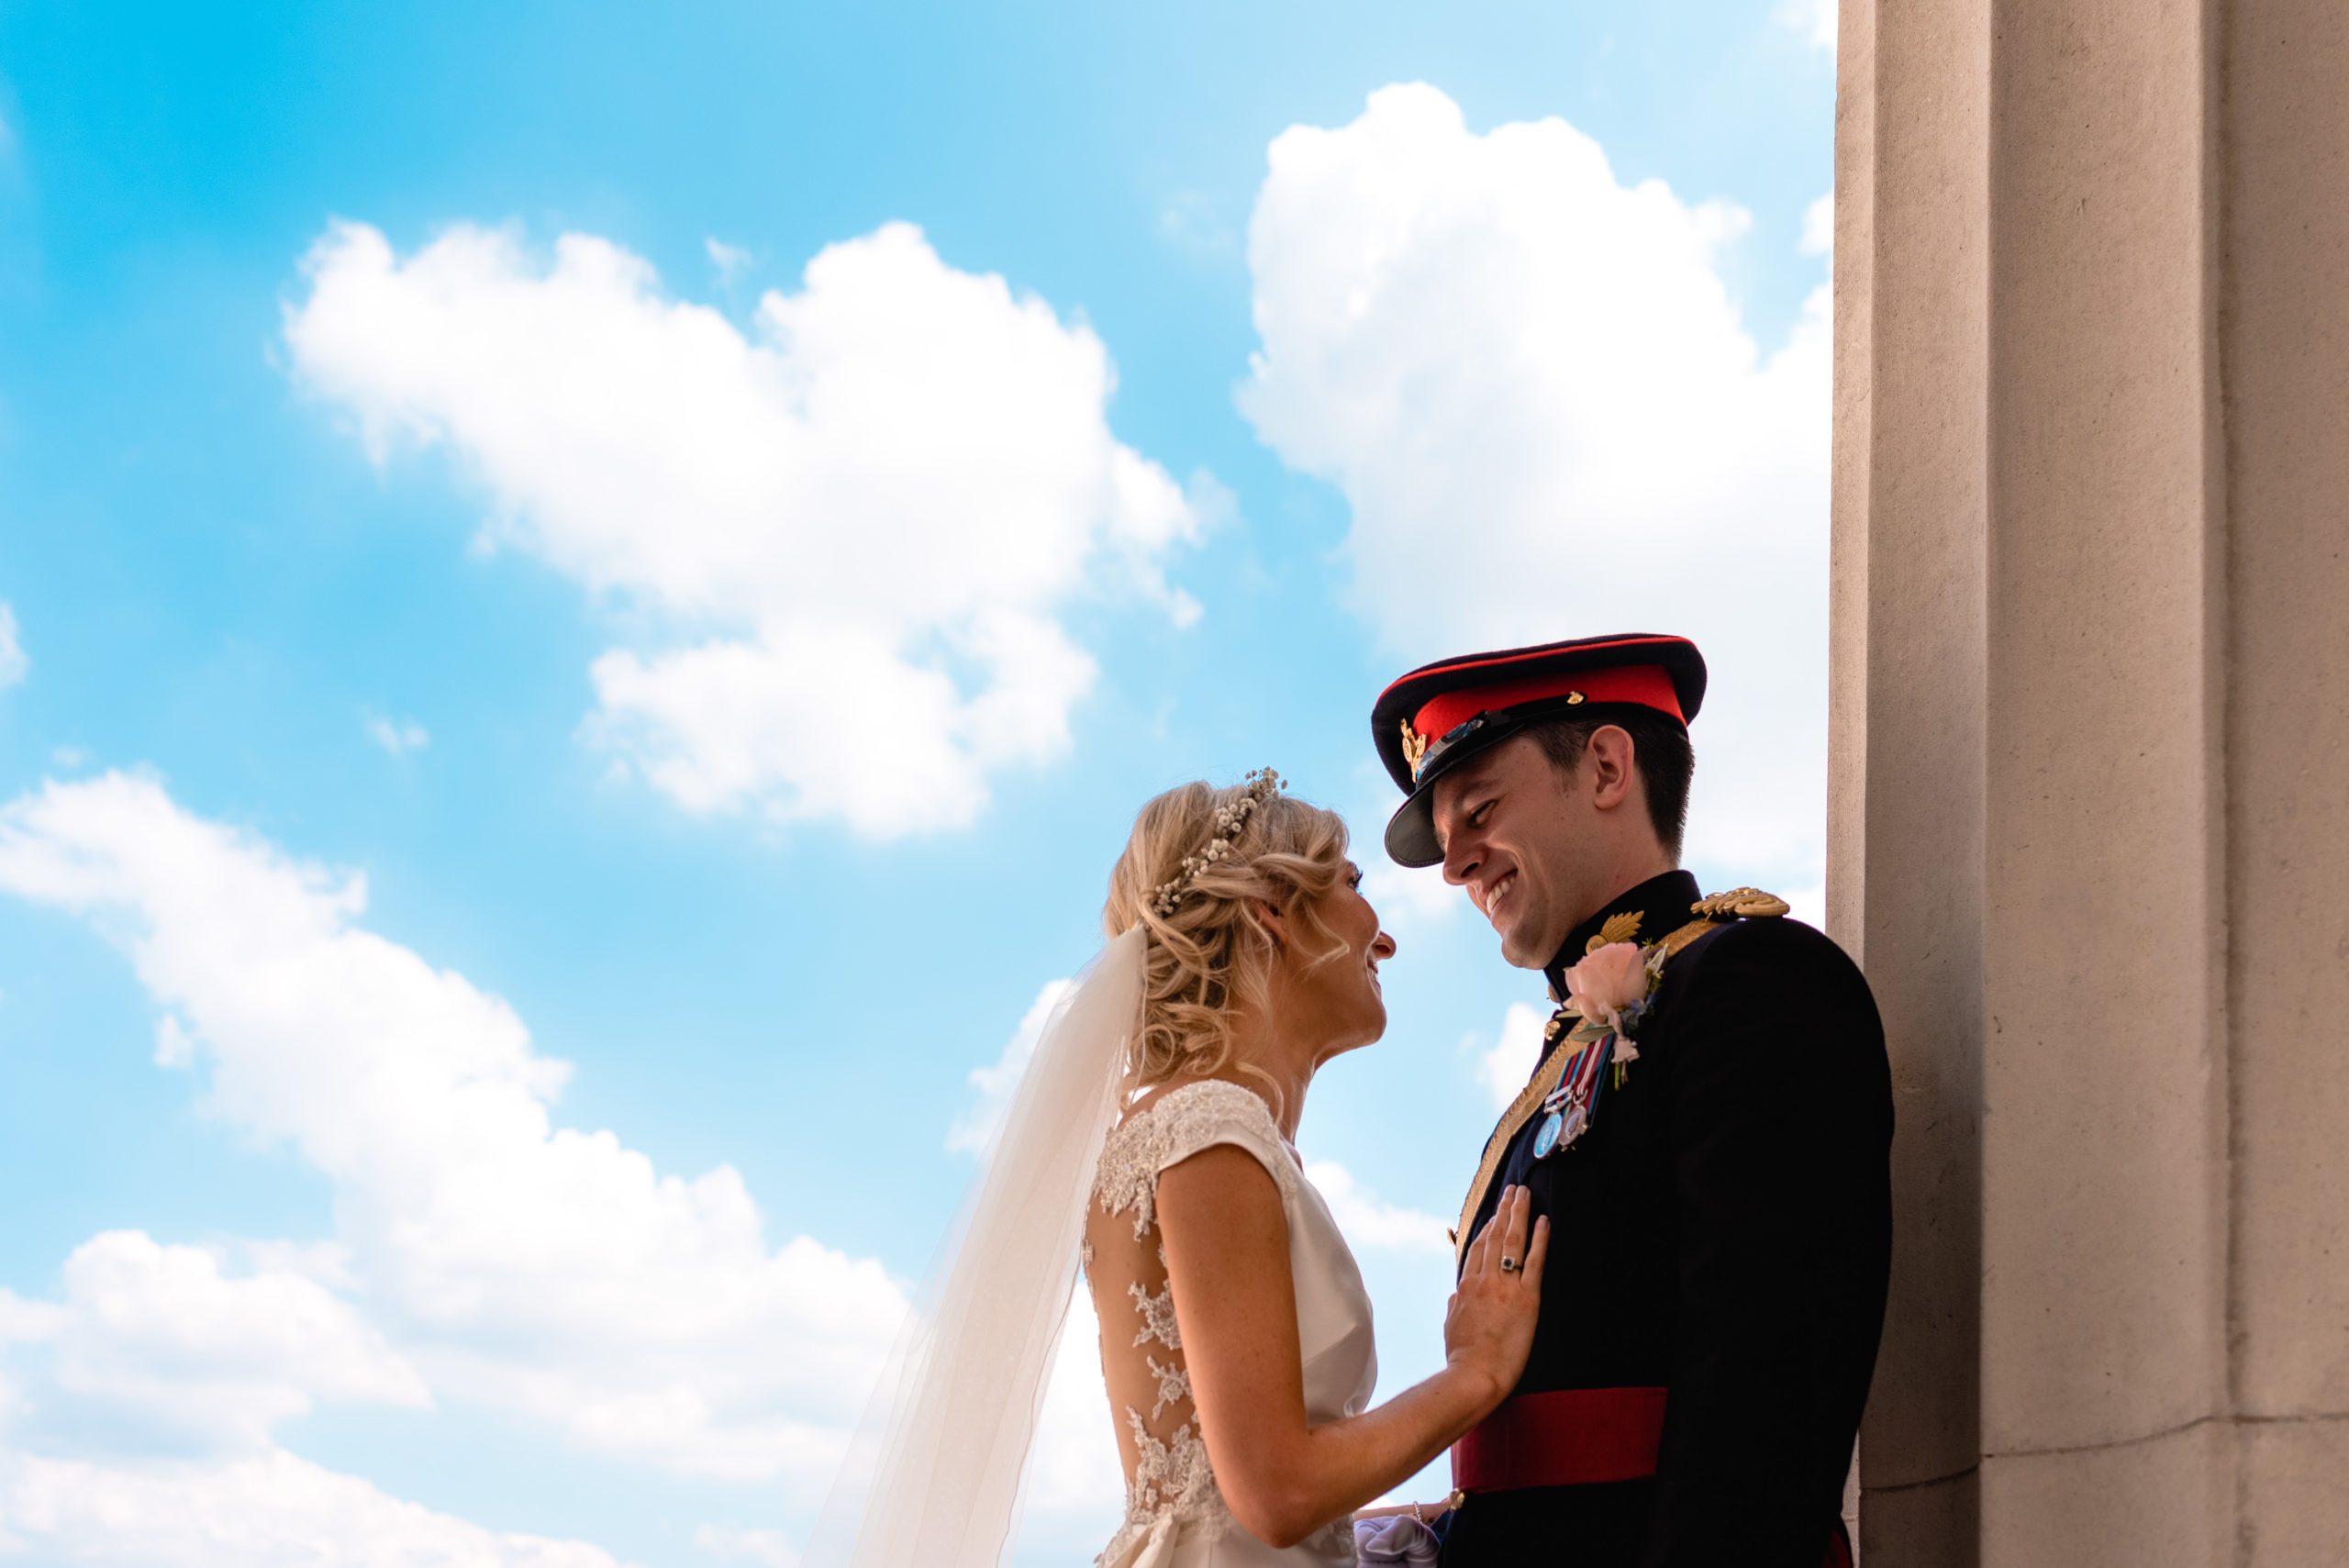 Wedding at Royal Military Academy Sandhurst, UK